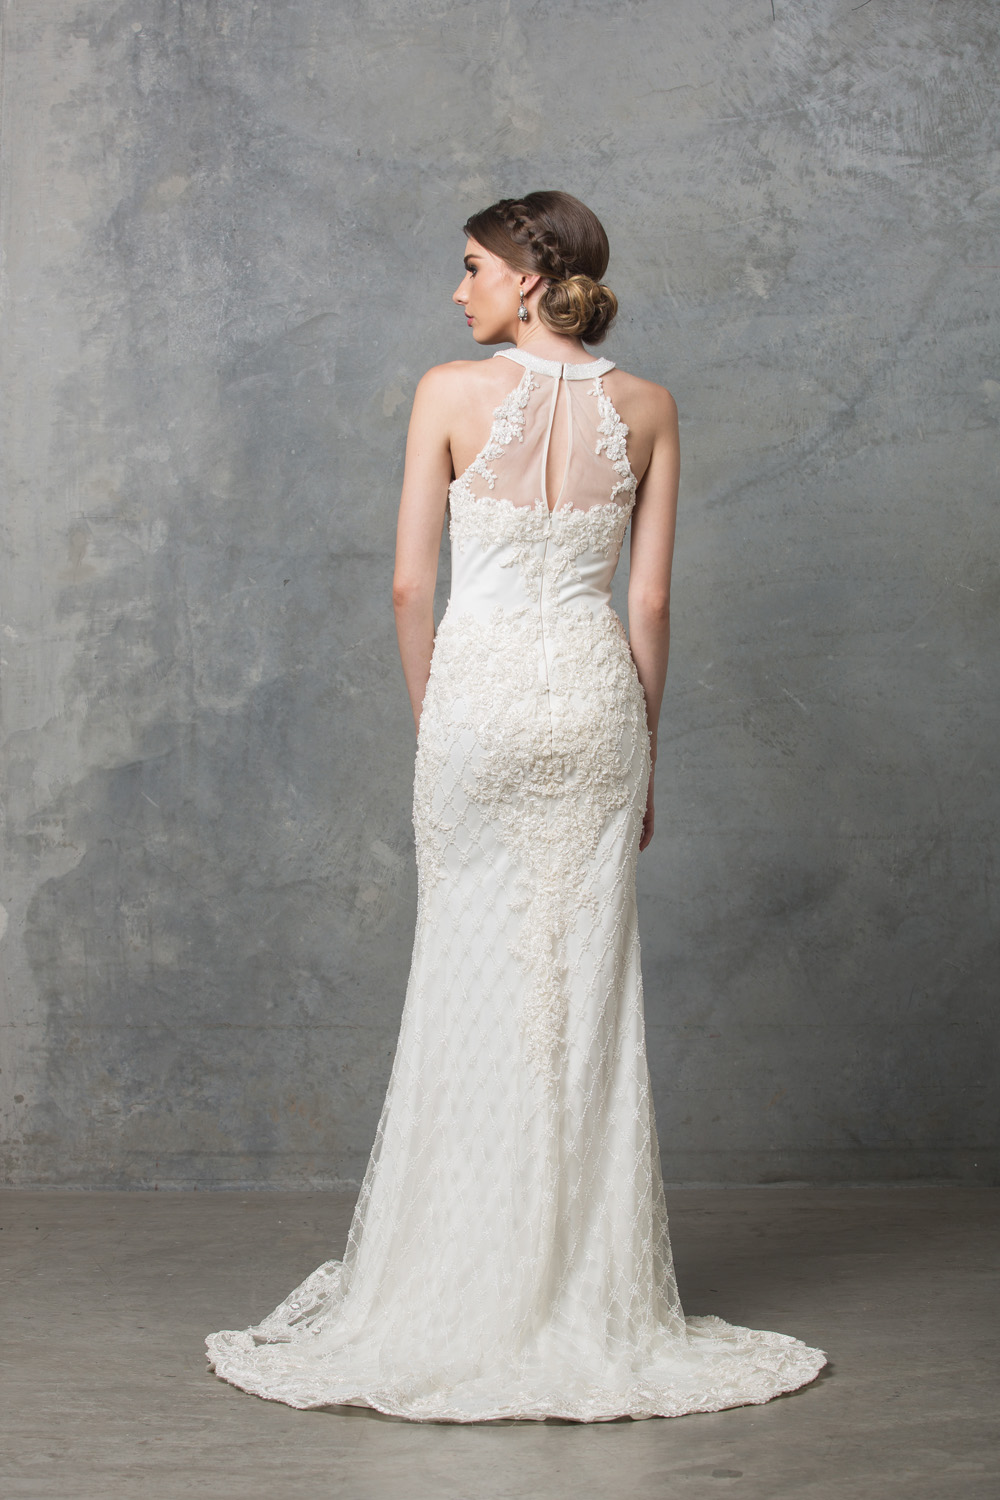 Clarissa beaded high neck wedding dress back